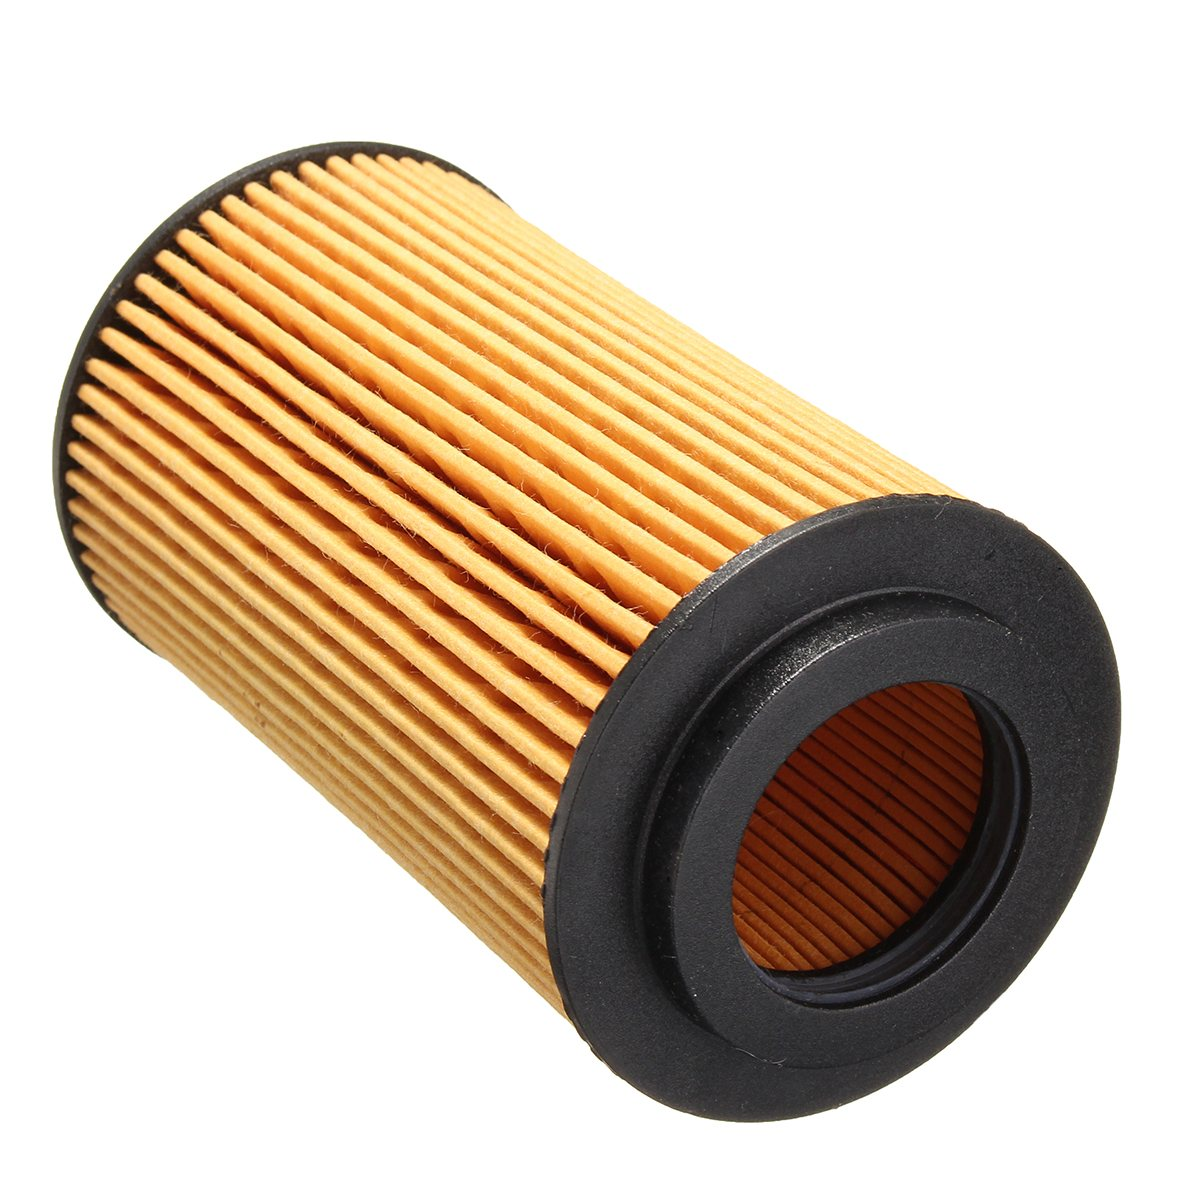 Engine Car Oil Filter For W204 C-Class W212 E-Class For Mercedes-Benz <font><b>OM651</b></font> A6511800109 image